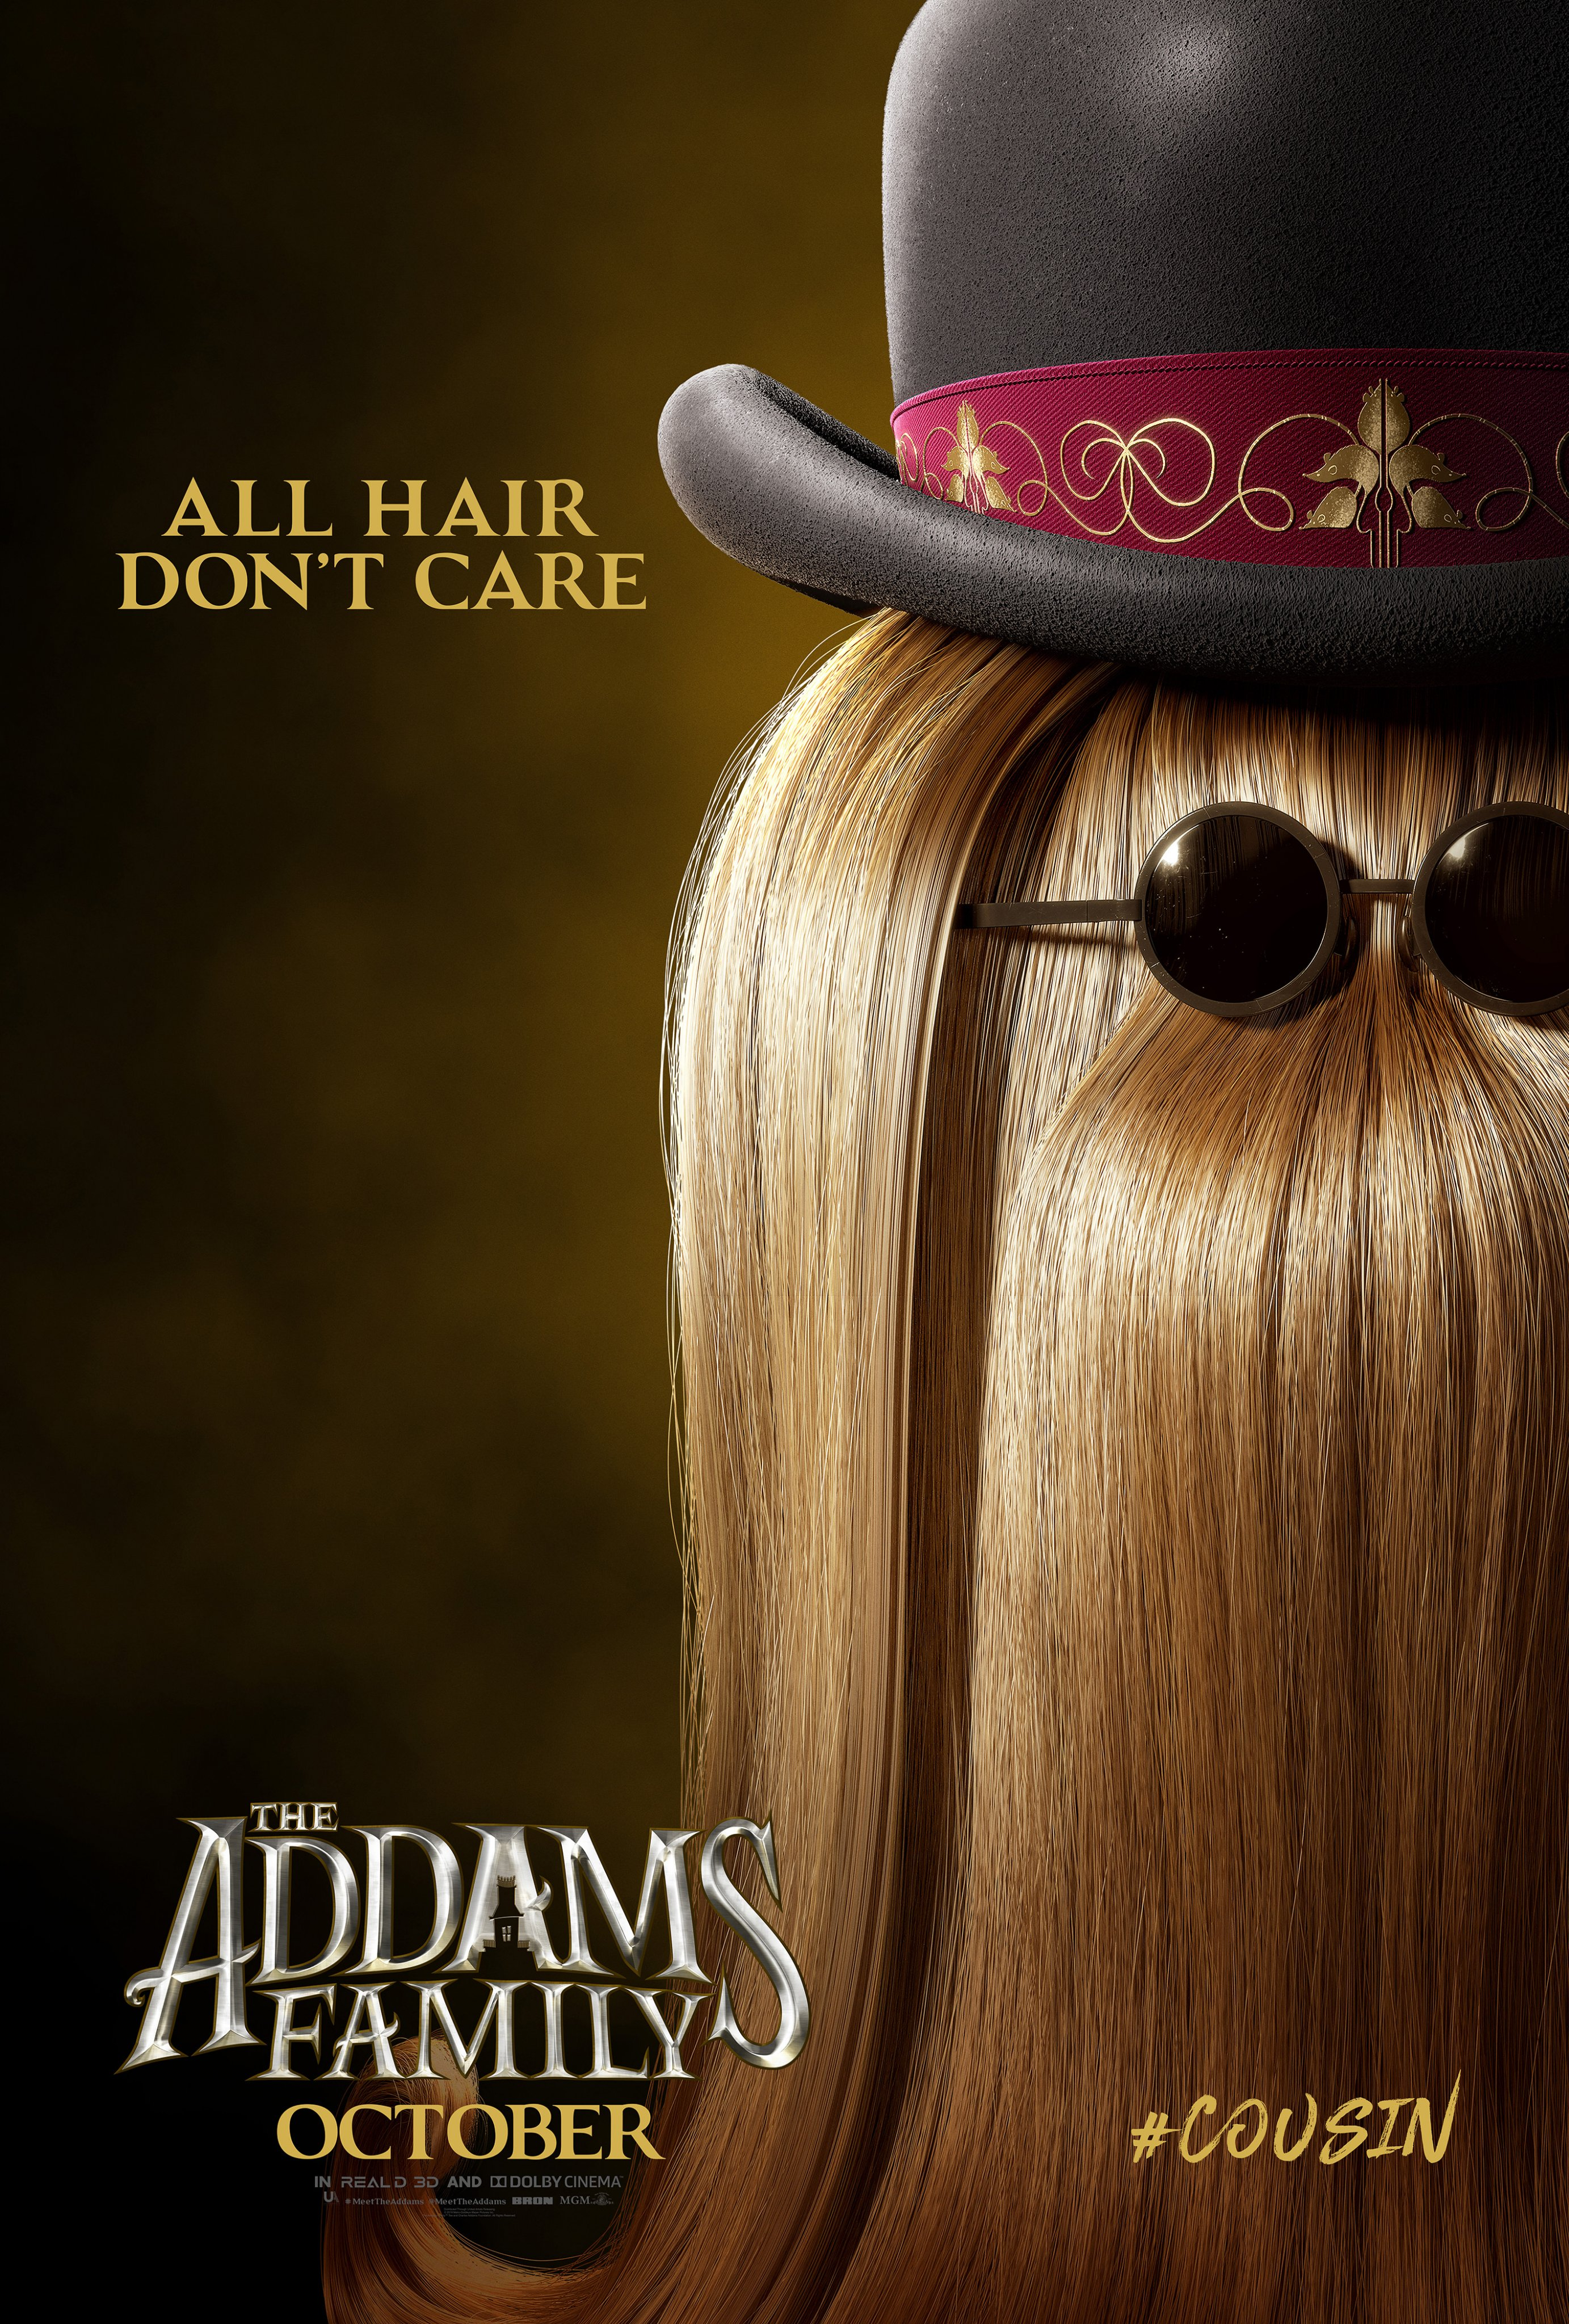 Each Member Of The Addams Family Gets A Character Poster